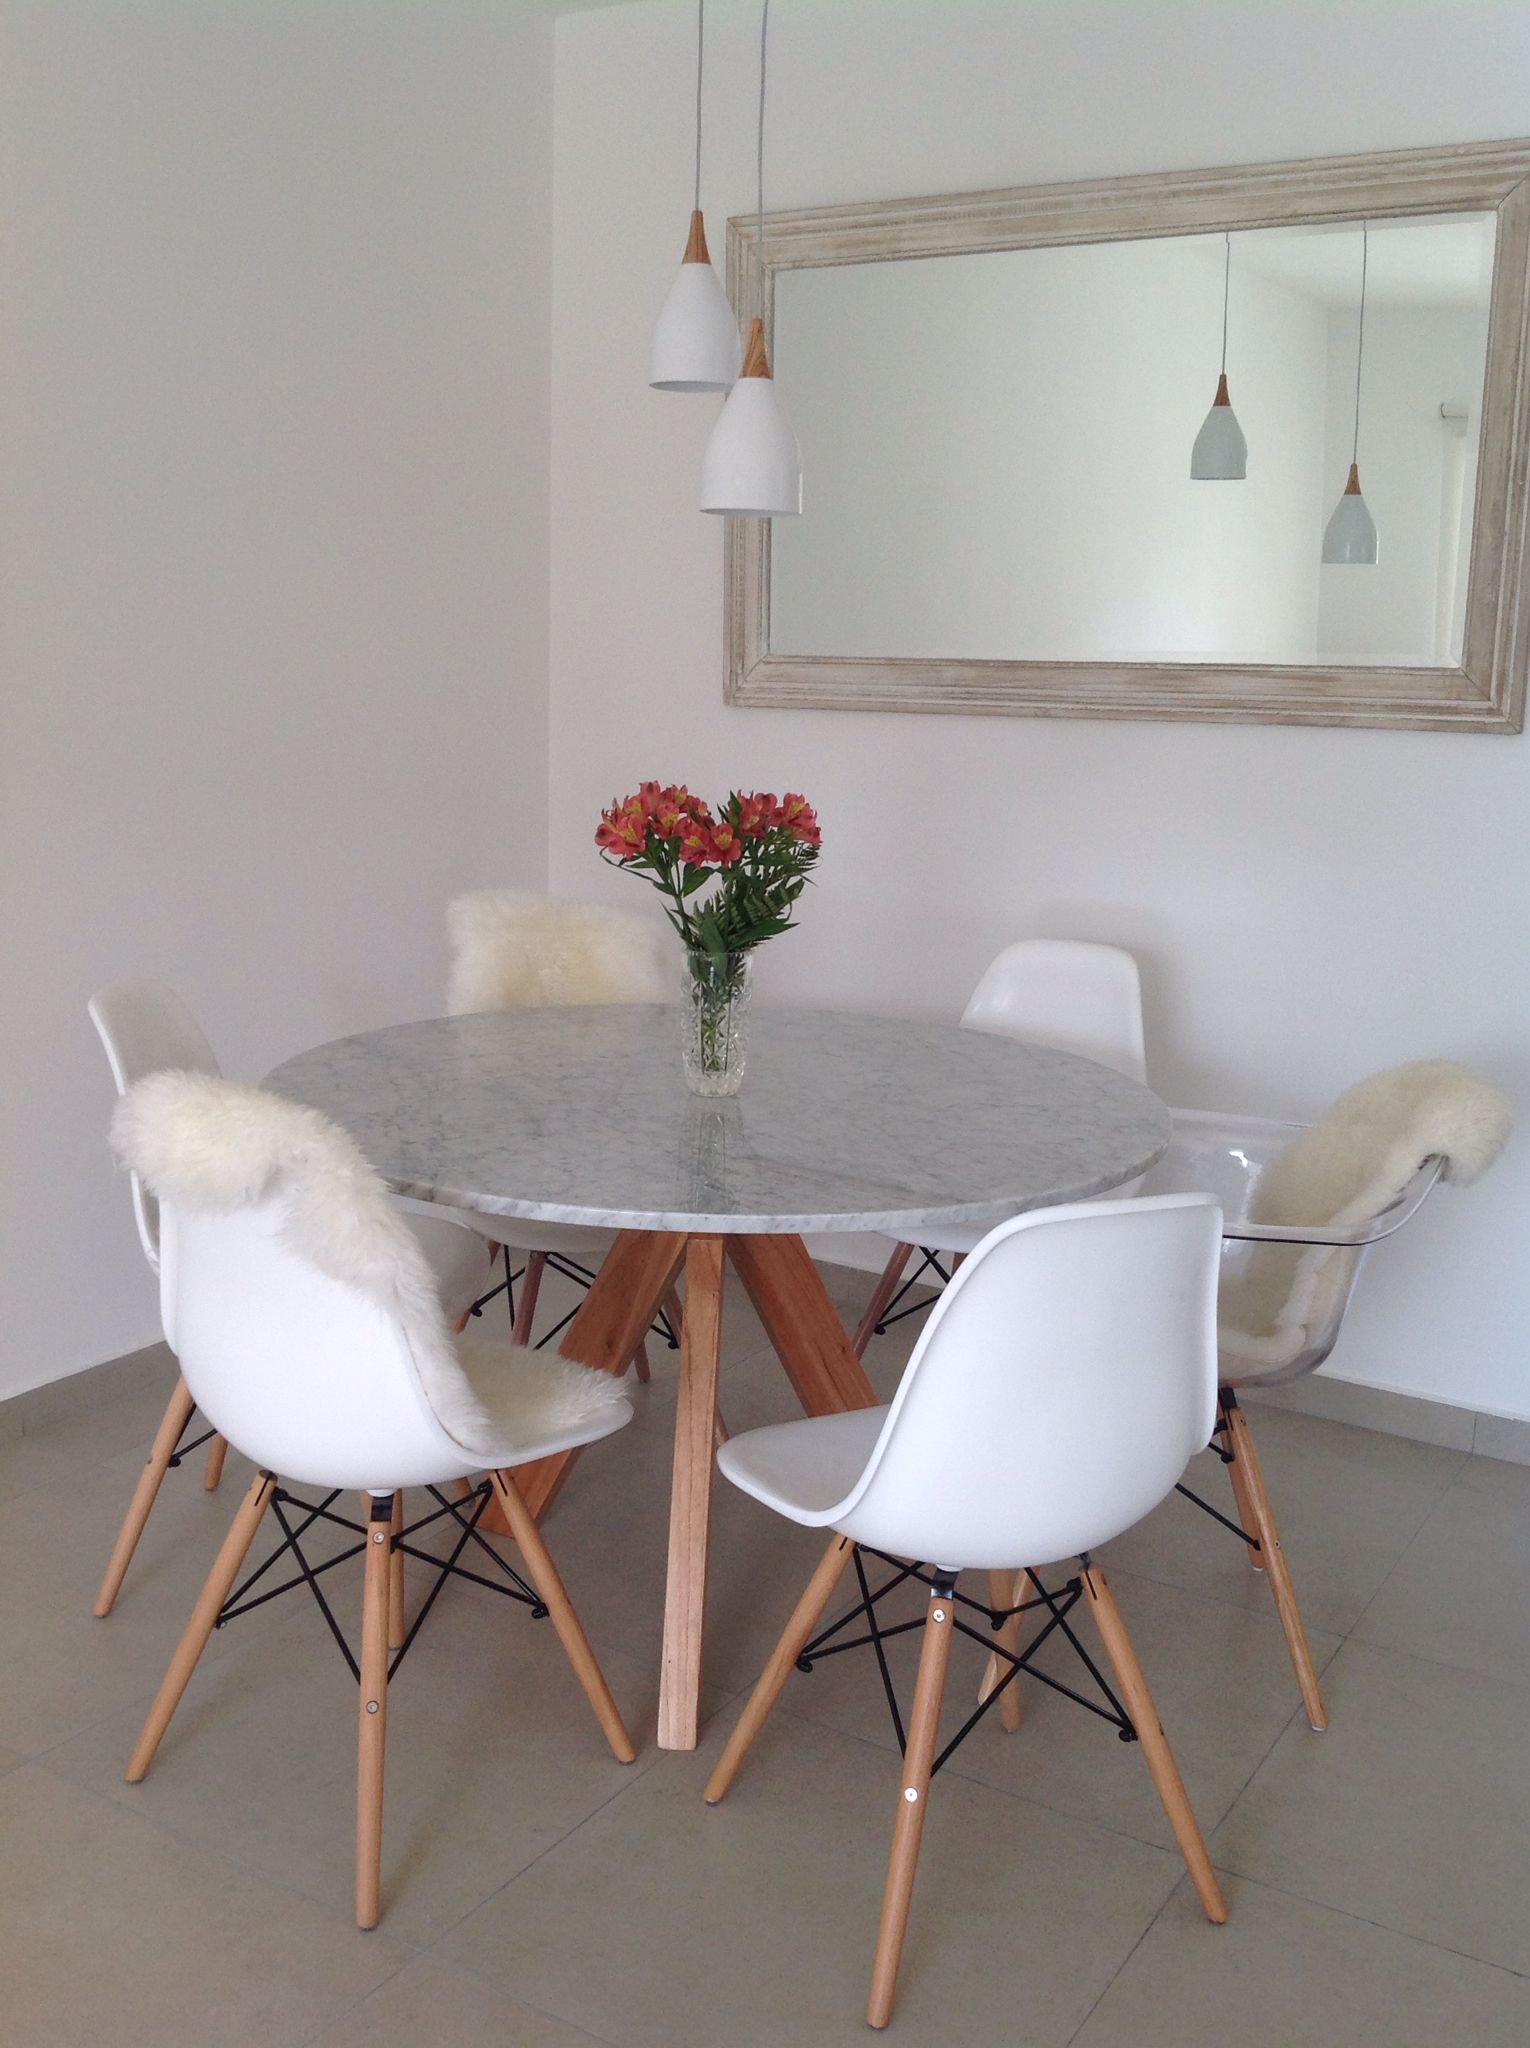 My dining room sillas eames blancas sill n eames for Comedor sillas eames